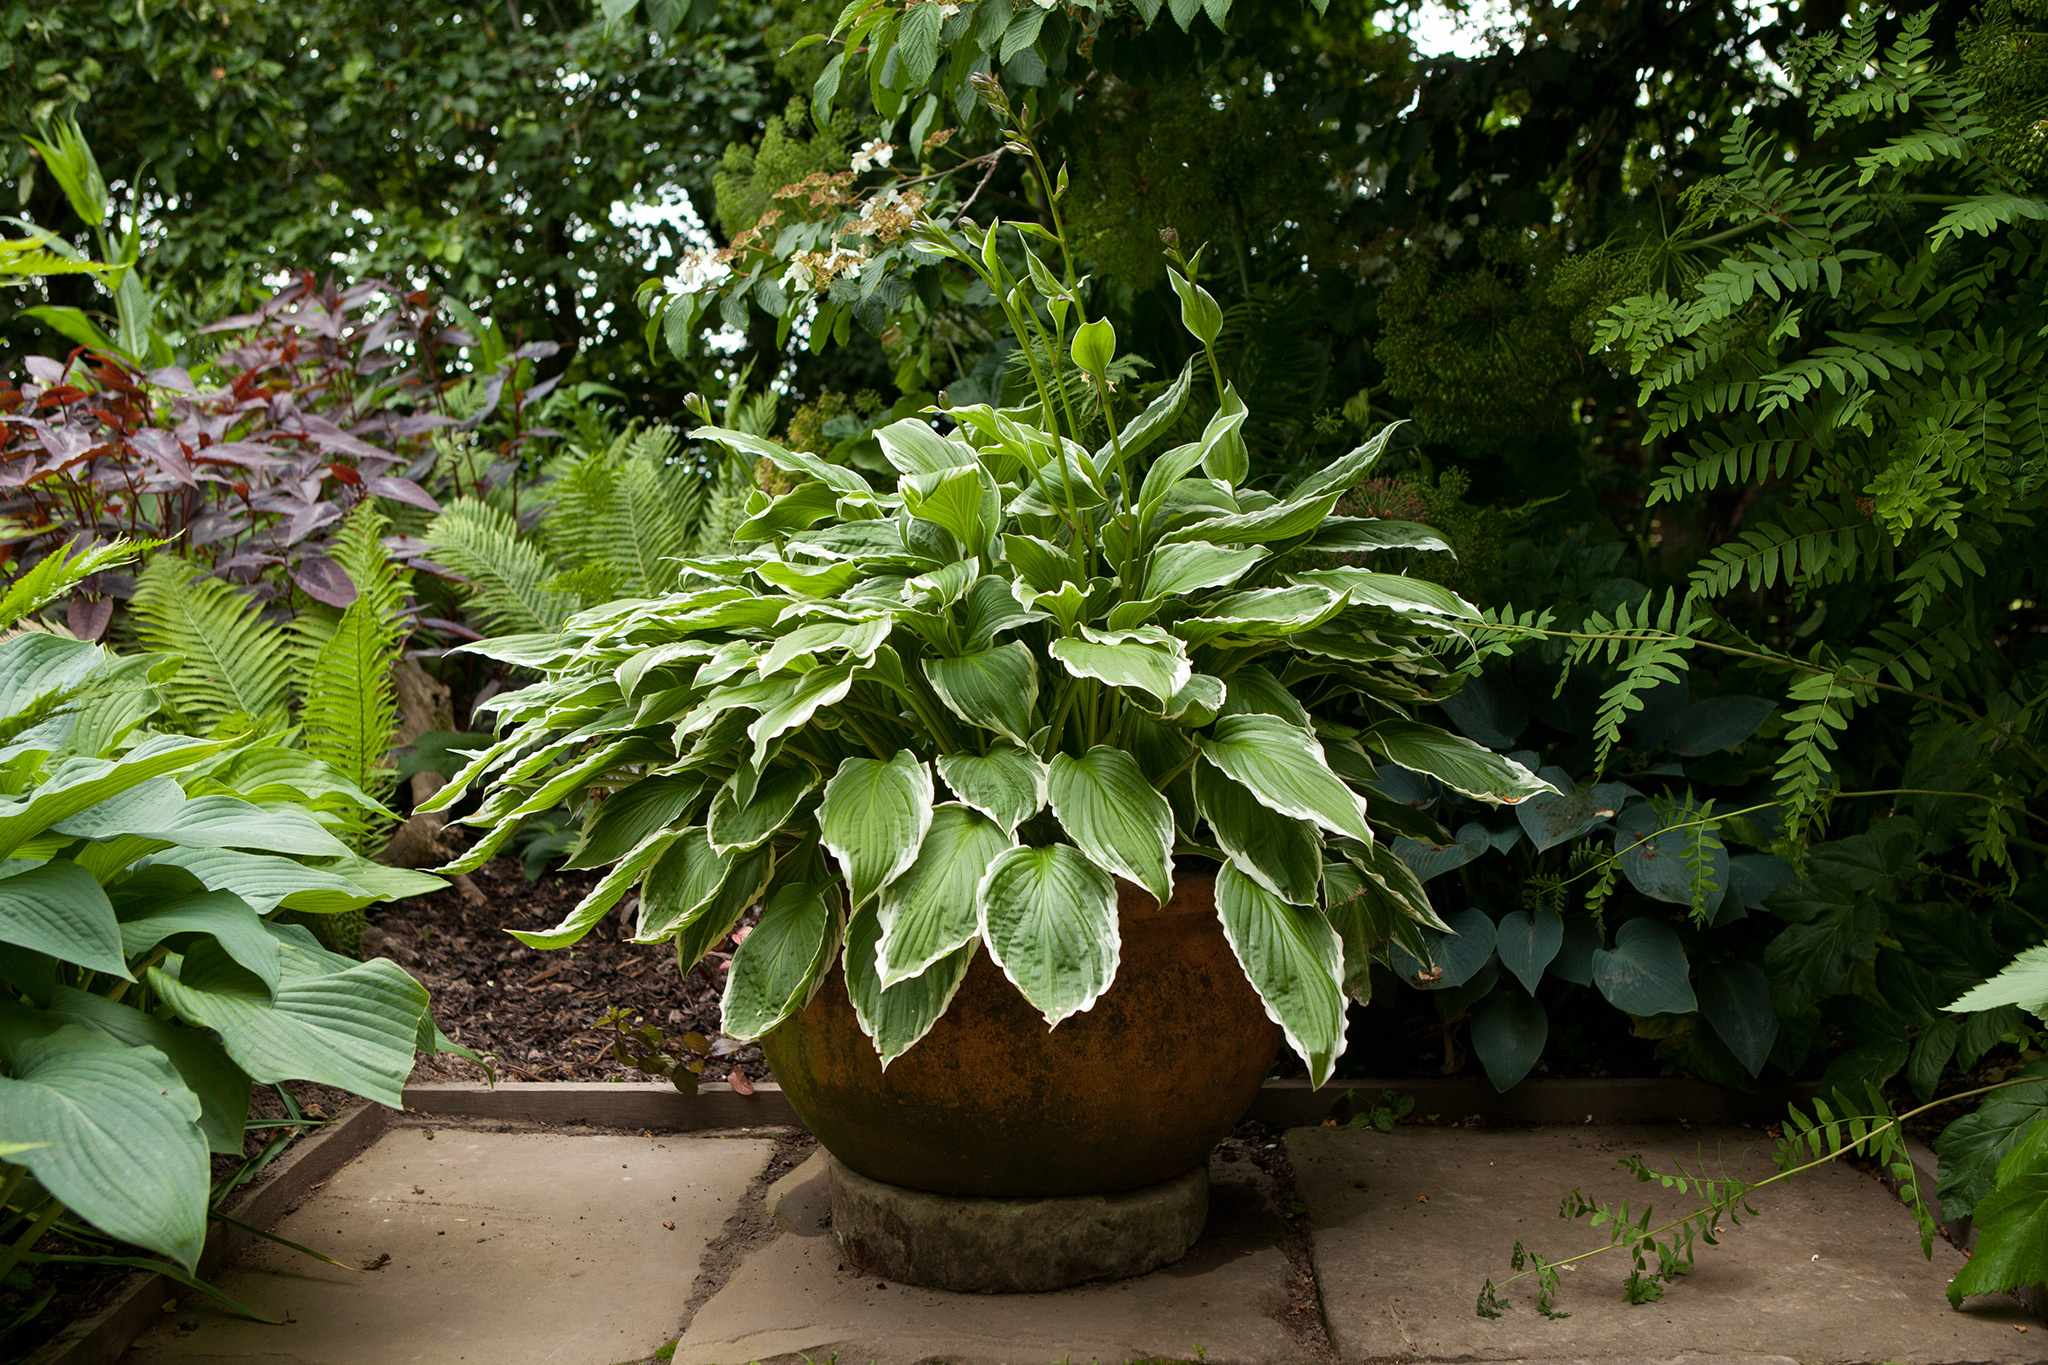 Container for shade planted with hosta